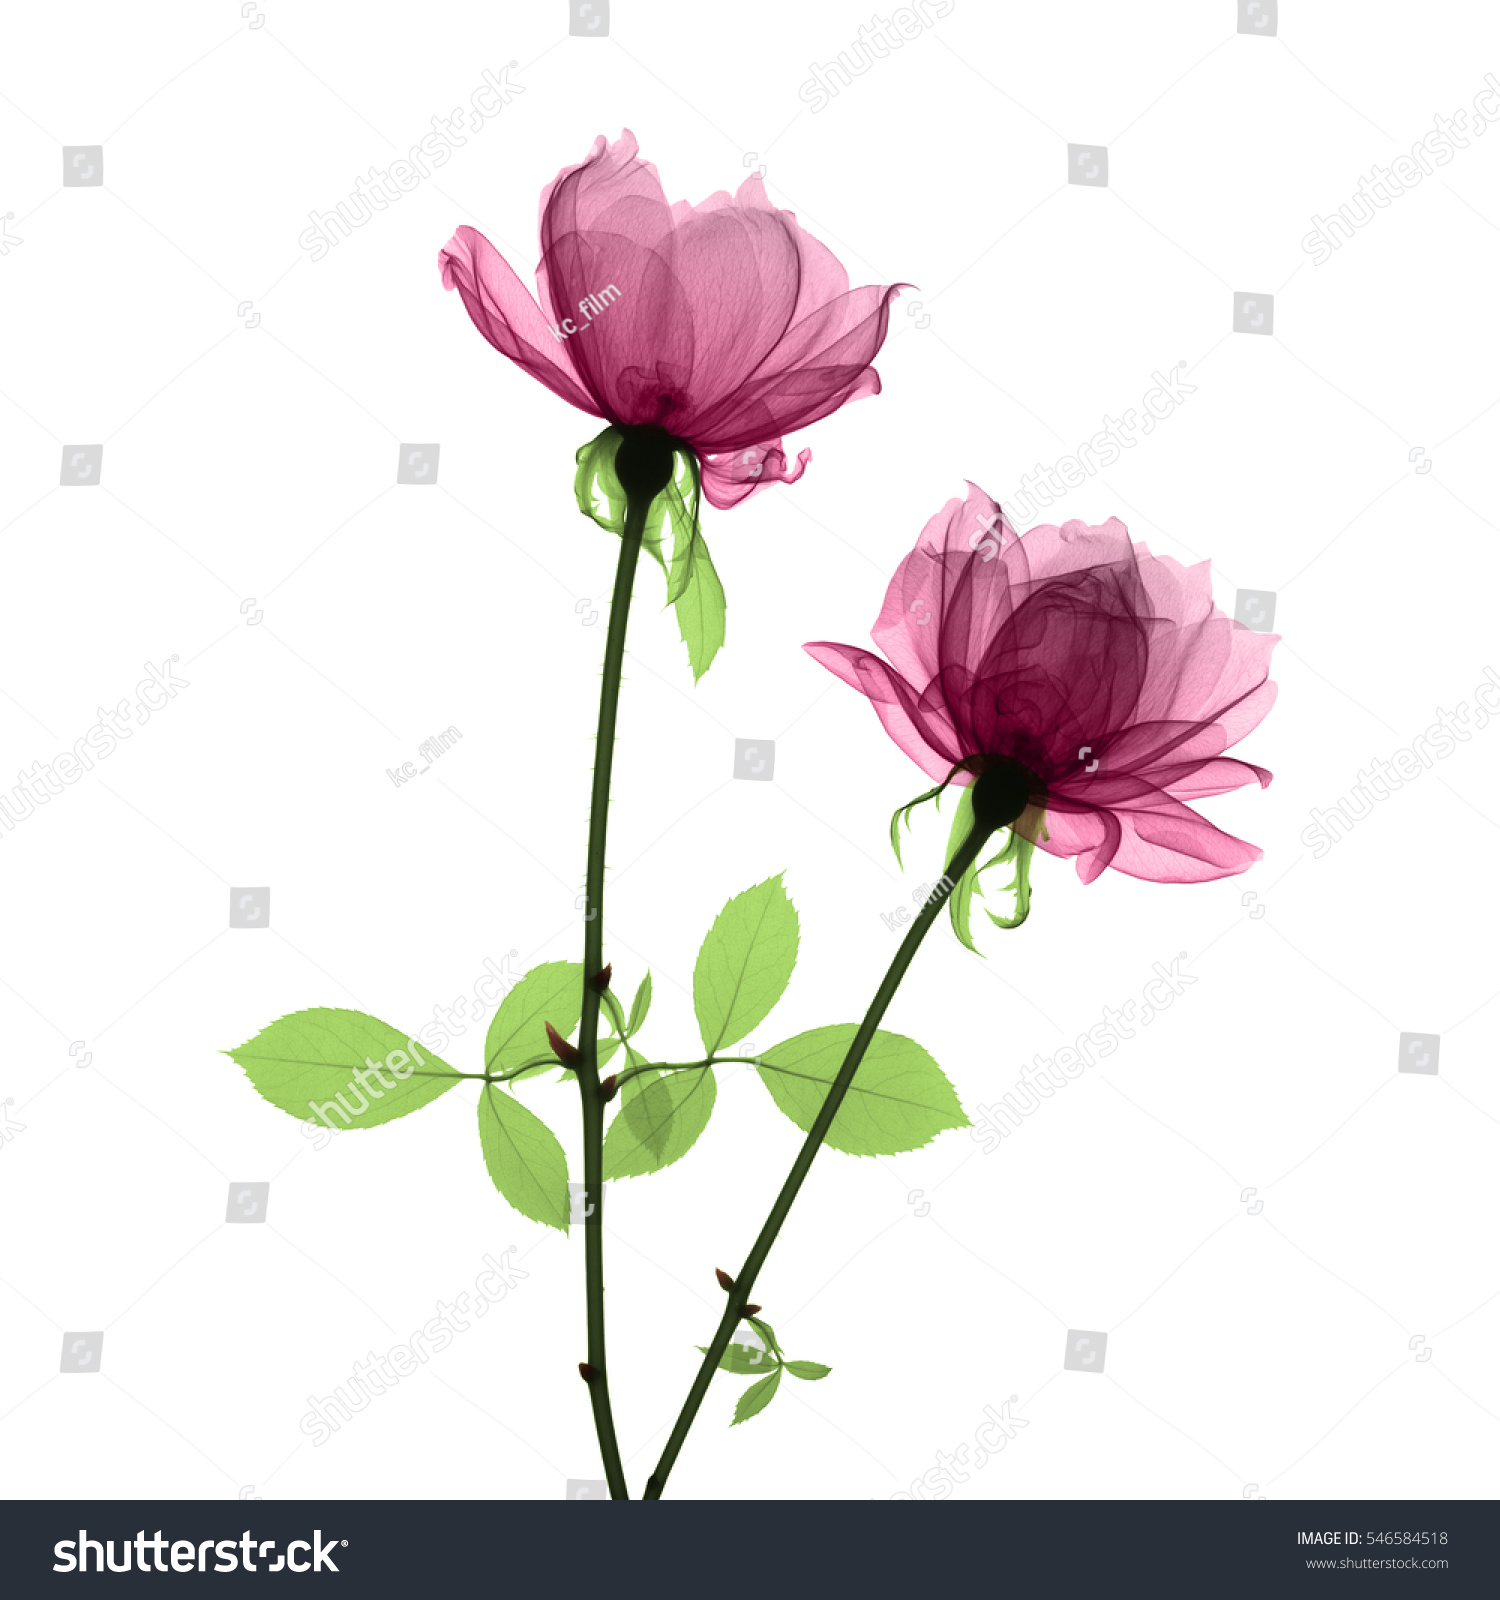 X Ray Of Rose Watercolor Amazing Tattoo For Me Yeti: Pink Roses Xray Stock Photo 546584518